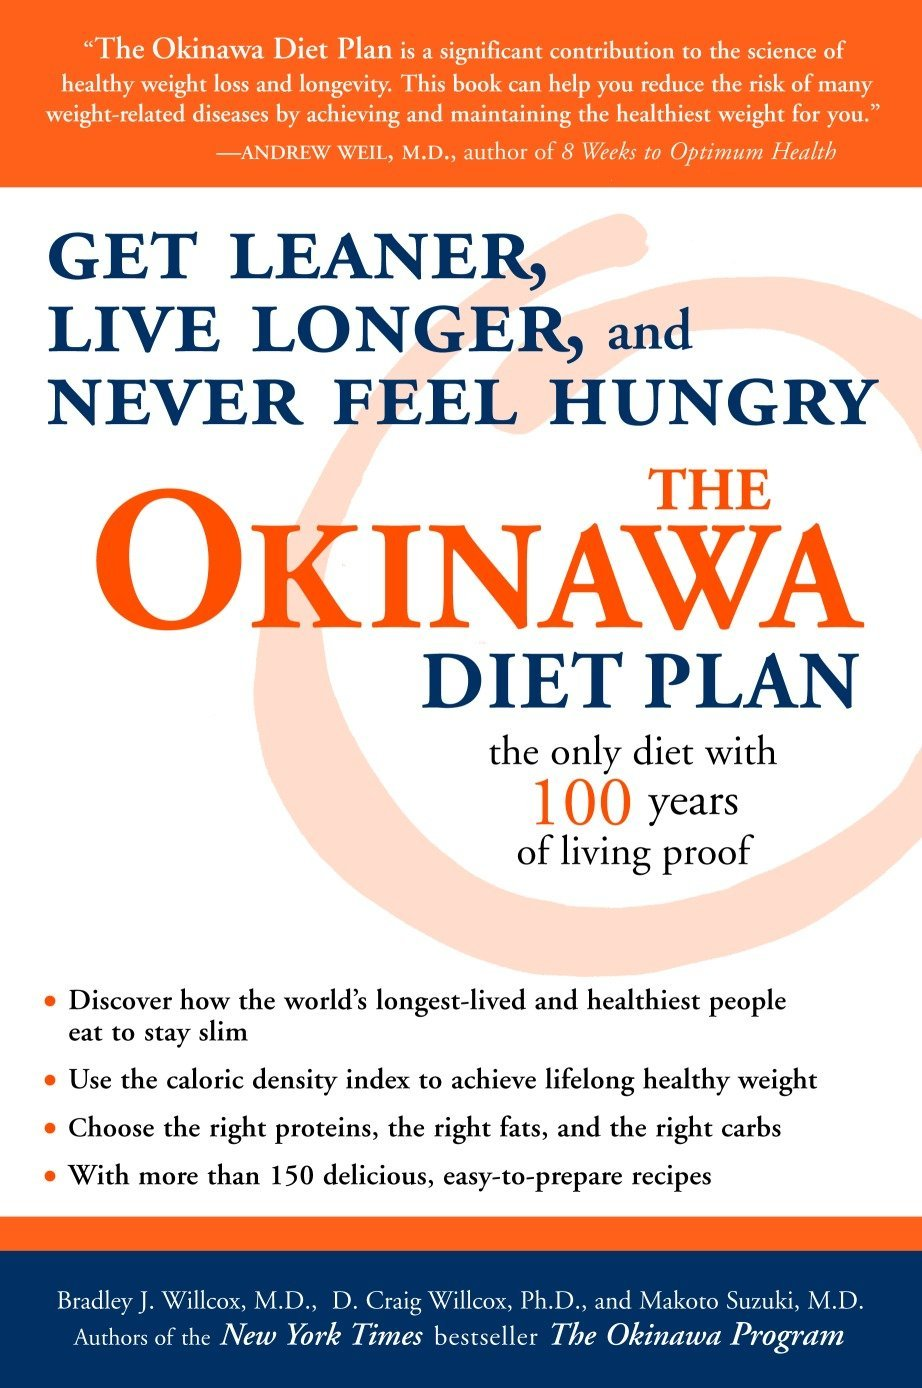 The Okinawa Diet Plan: Get Leaner, Live Longer, and